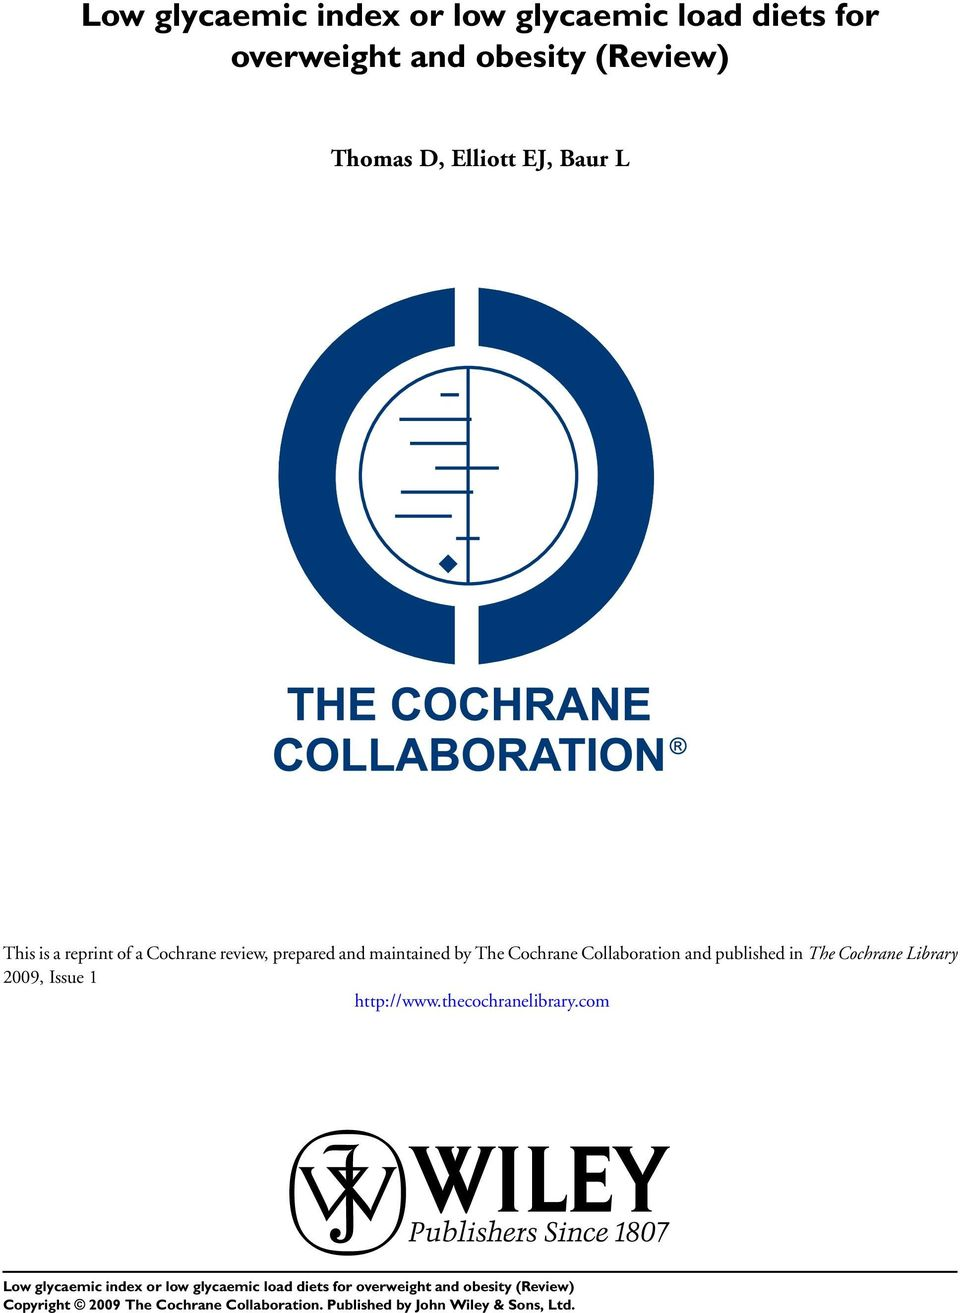 Cochrane review, prepared and maintained by The Cochrane Collaboration